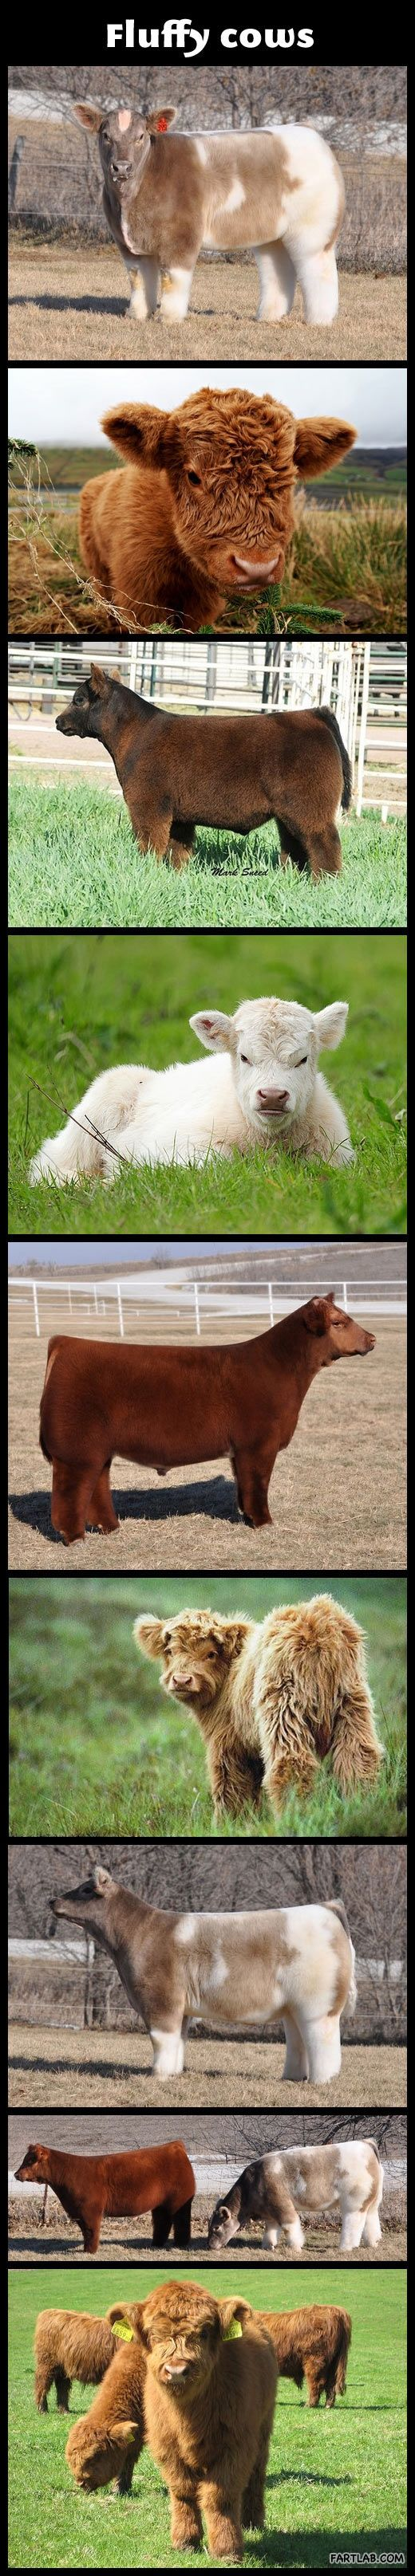 fluffy cows - I am so glad these exist!